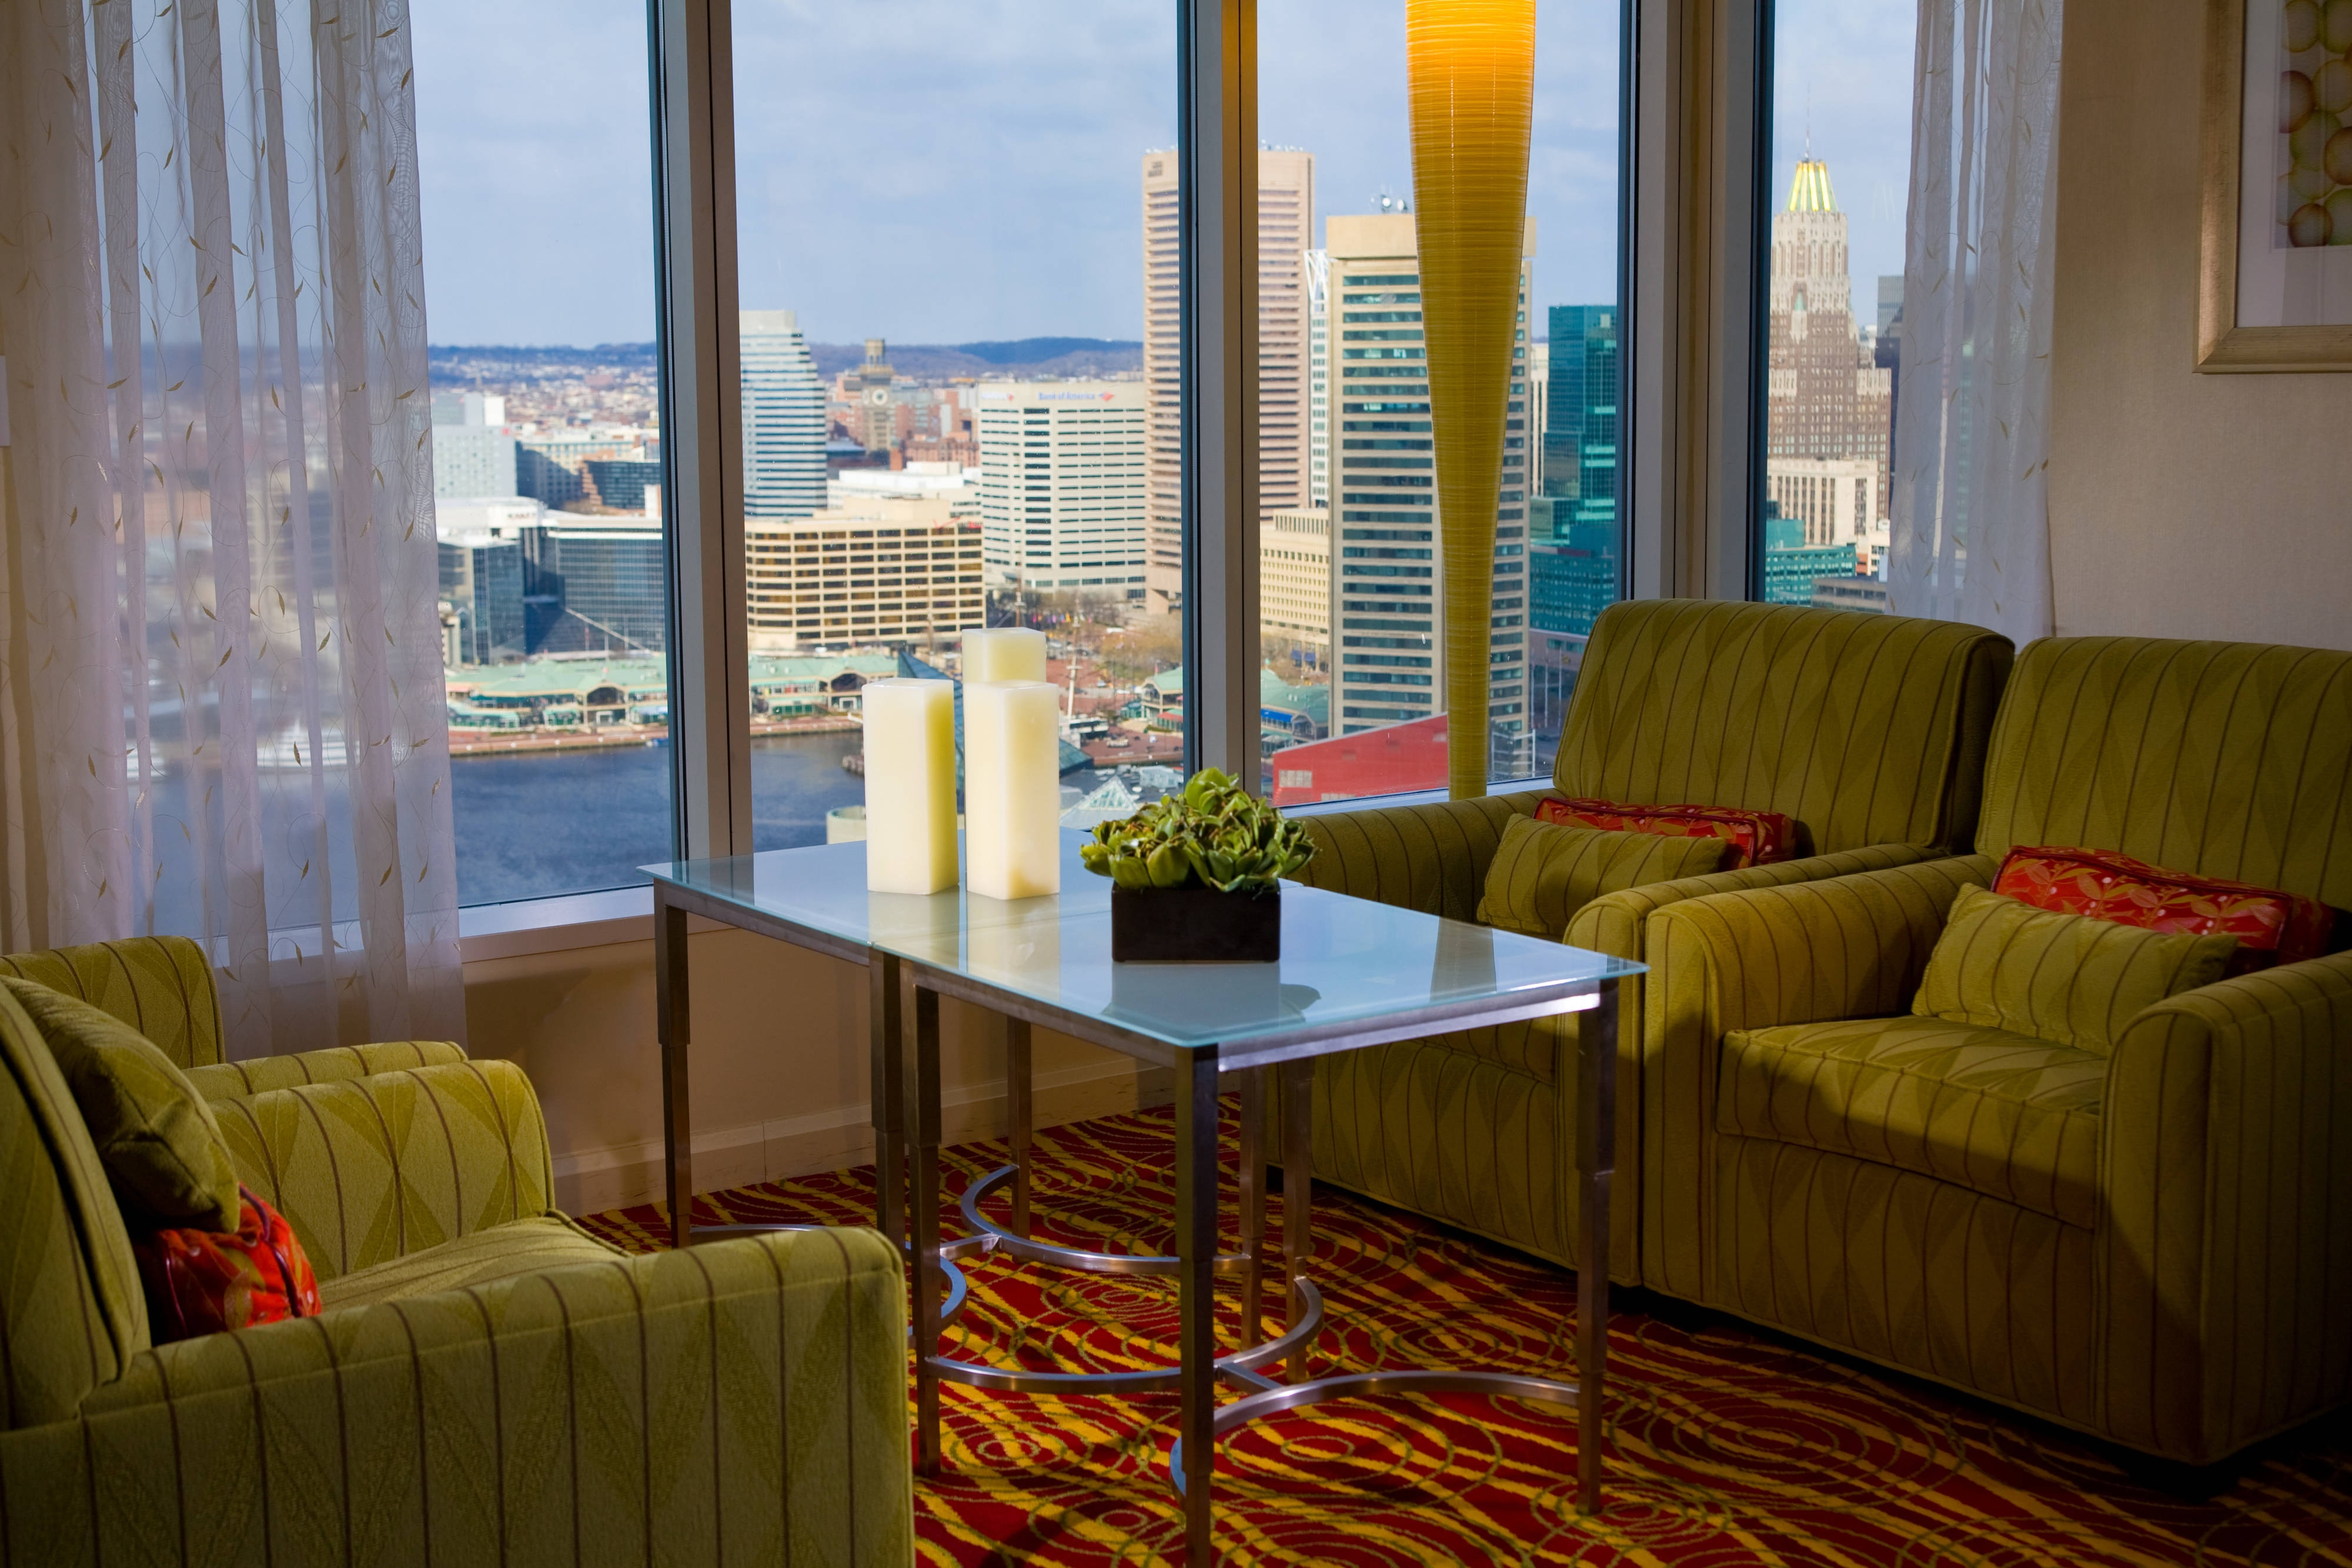 Downtown Baltimore hotel concierge lounge